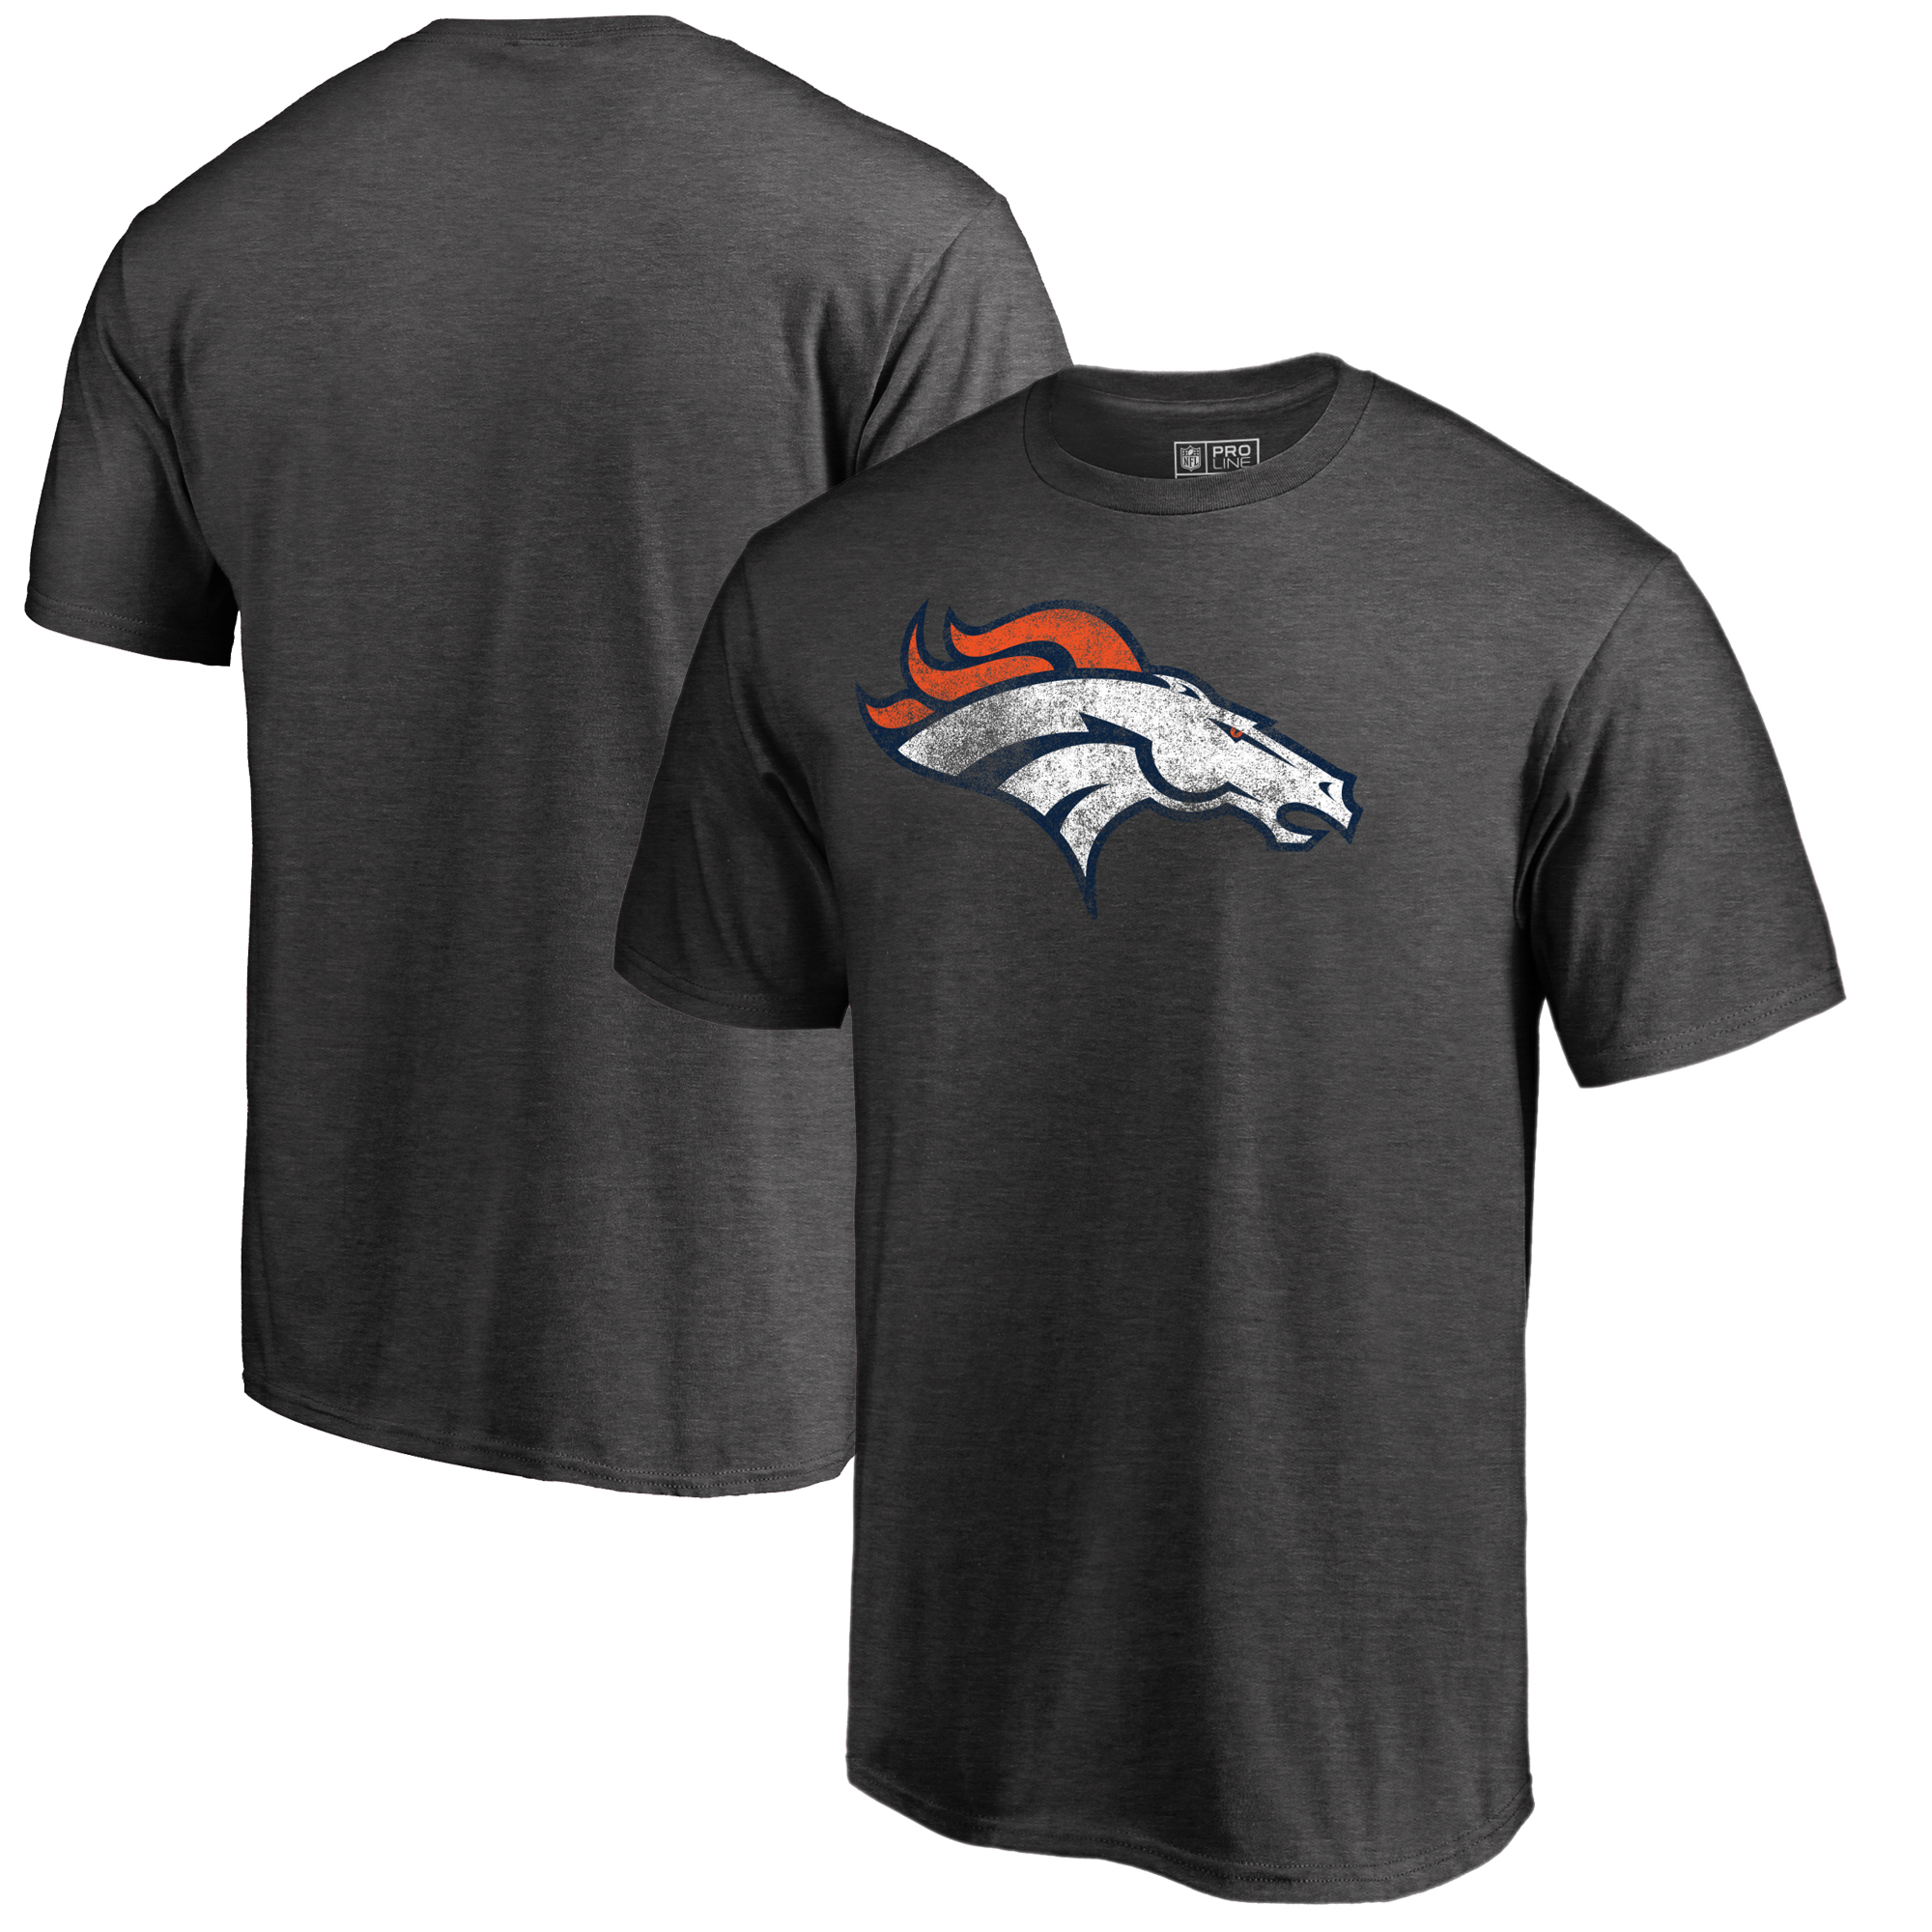 Denver Broncos NFL Pro Line by Fanatics Branded Big & Tall Distressed Team Logo T-Shirt - Charcoal